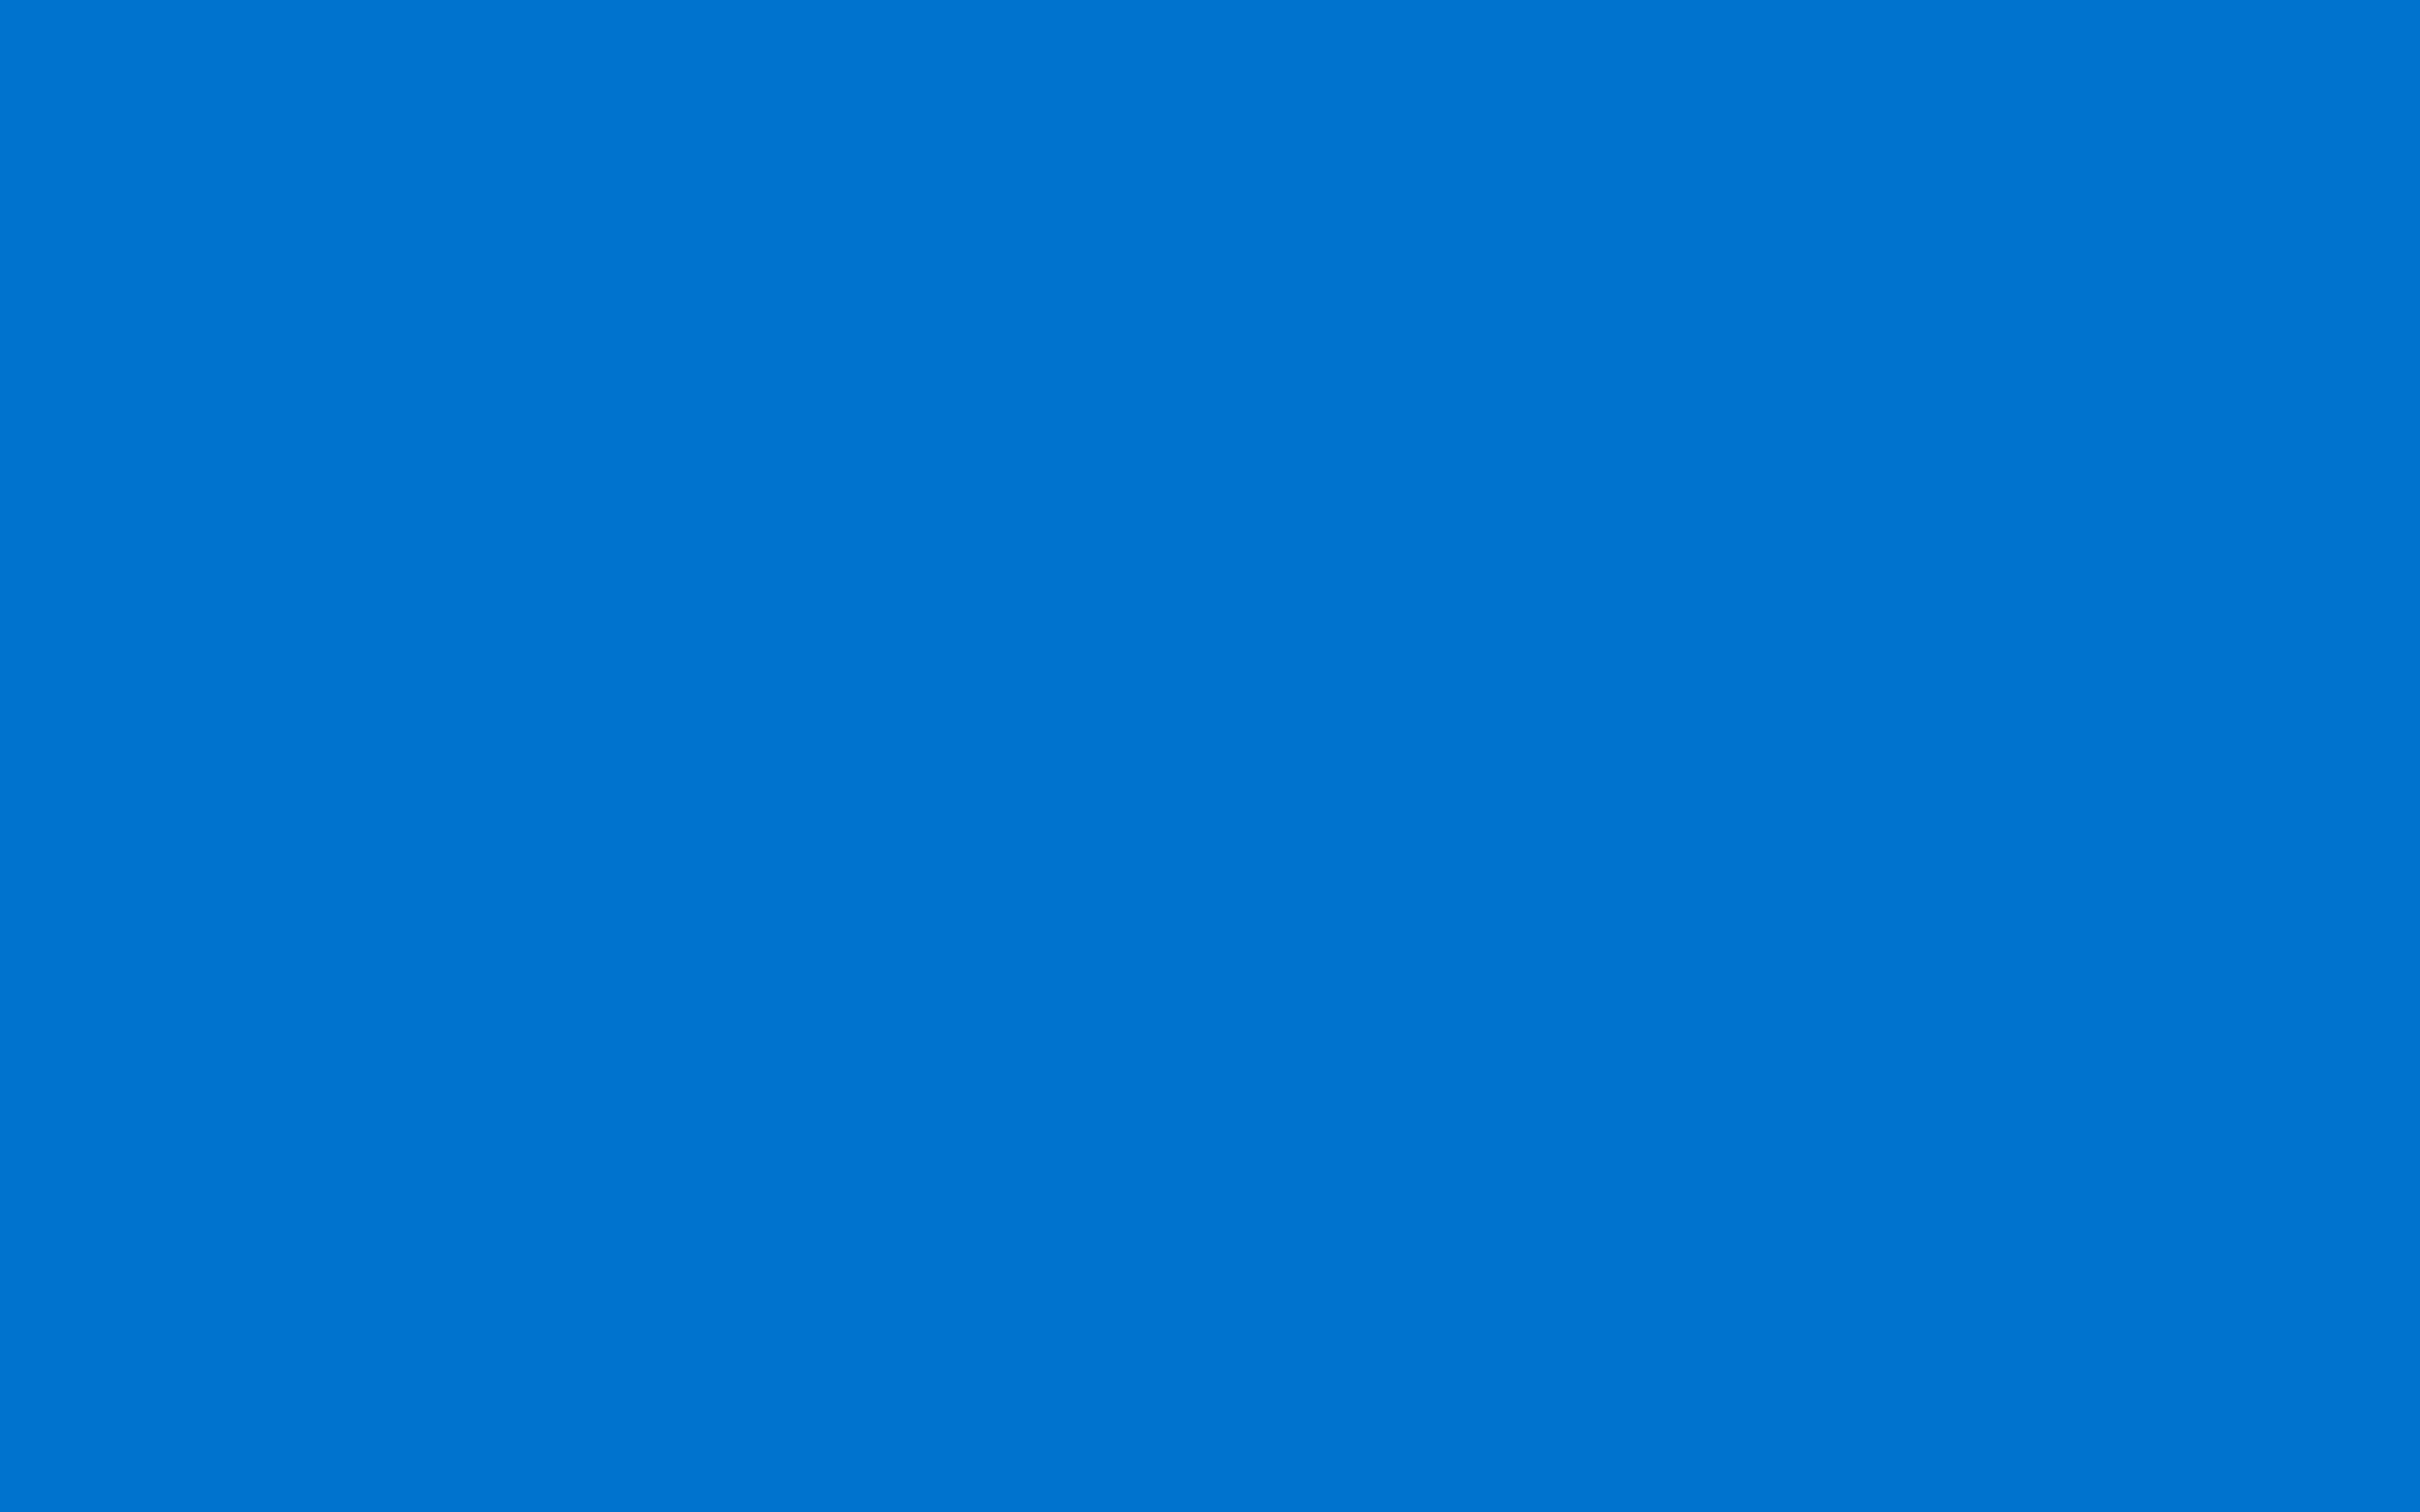 2880x1800 True Blue Solid Color Background